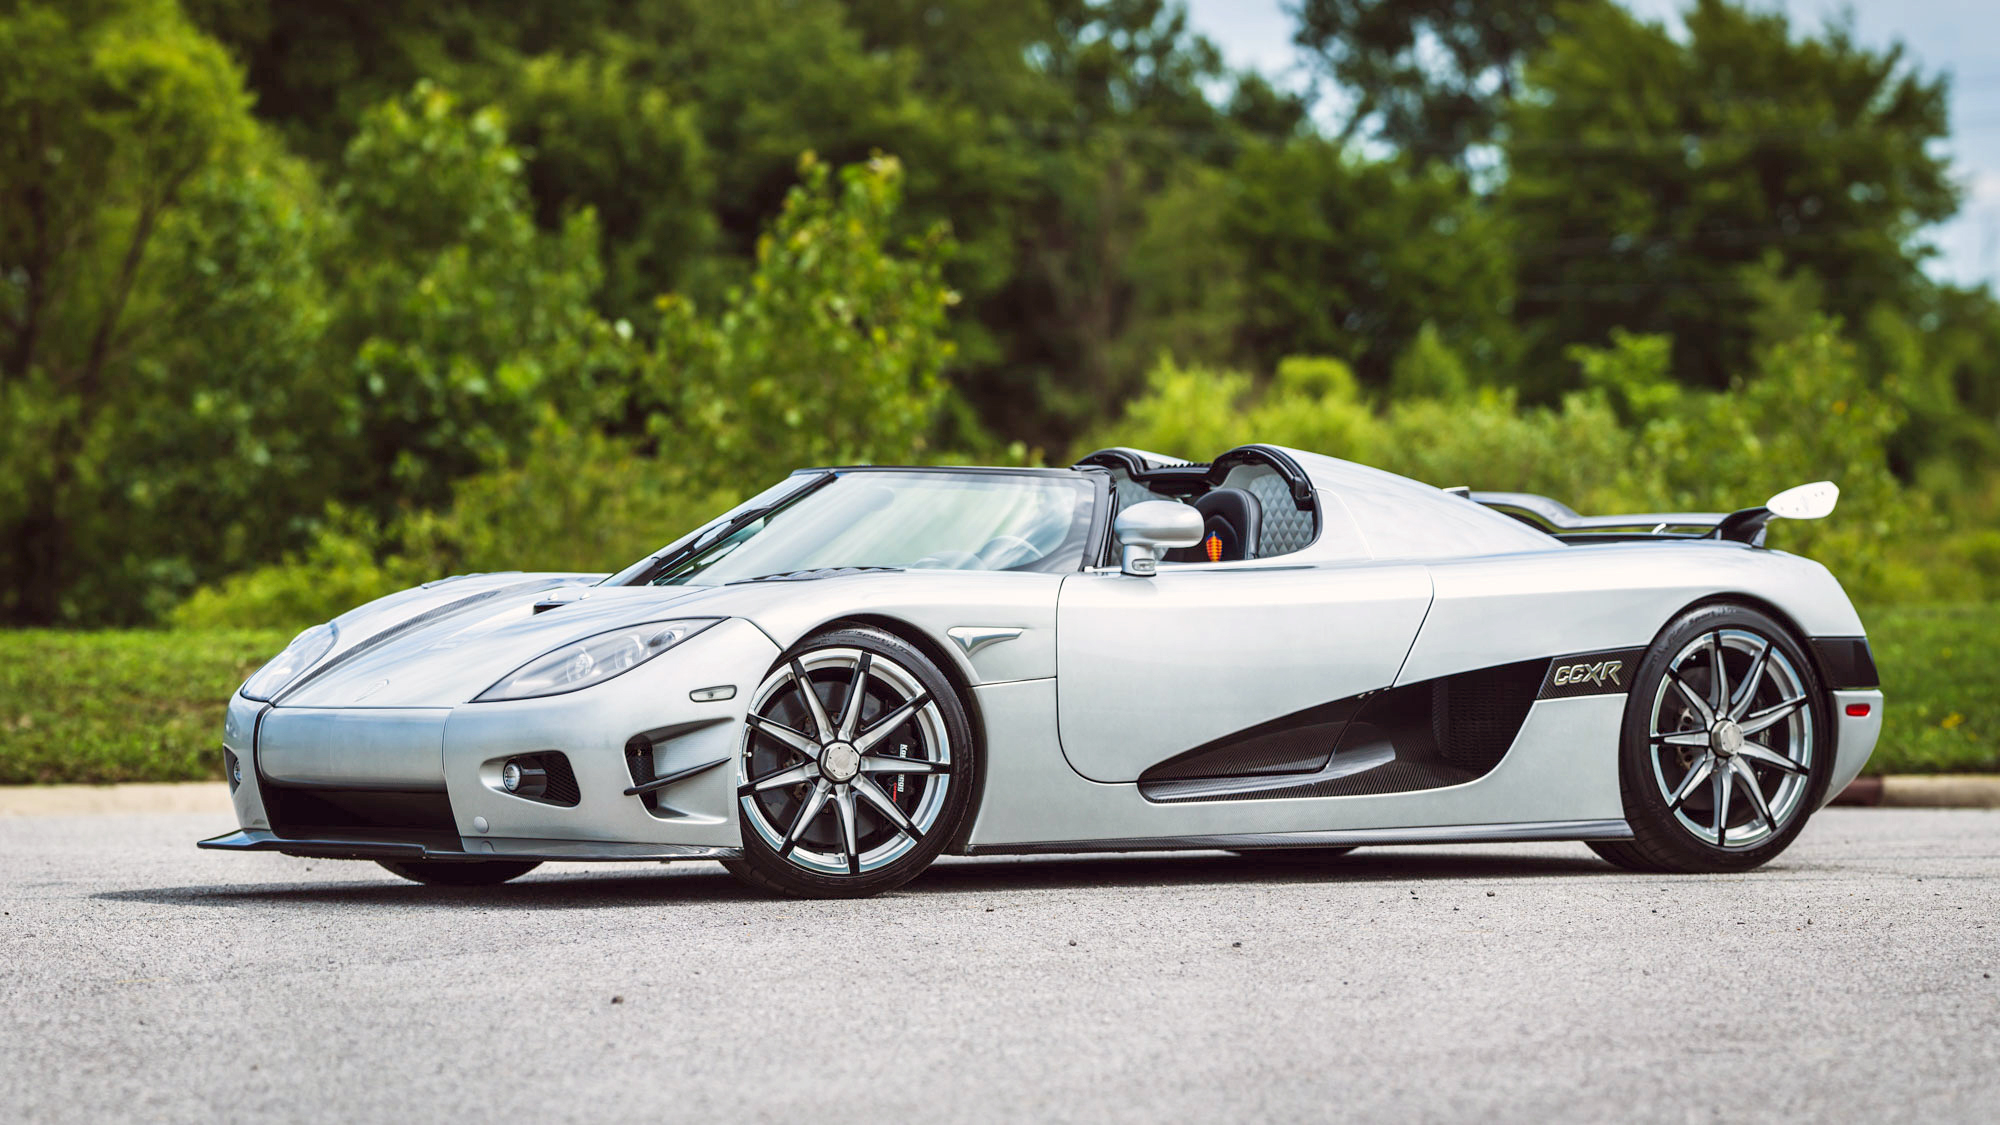 Updated: Floyd Mayweather's Koenigsegg CCXR Trevita Is Up for Grabs